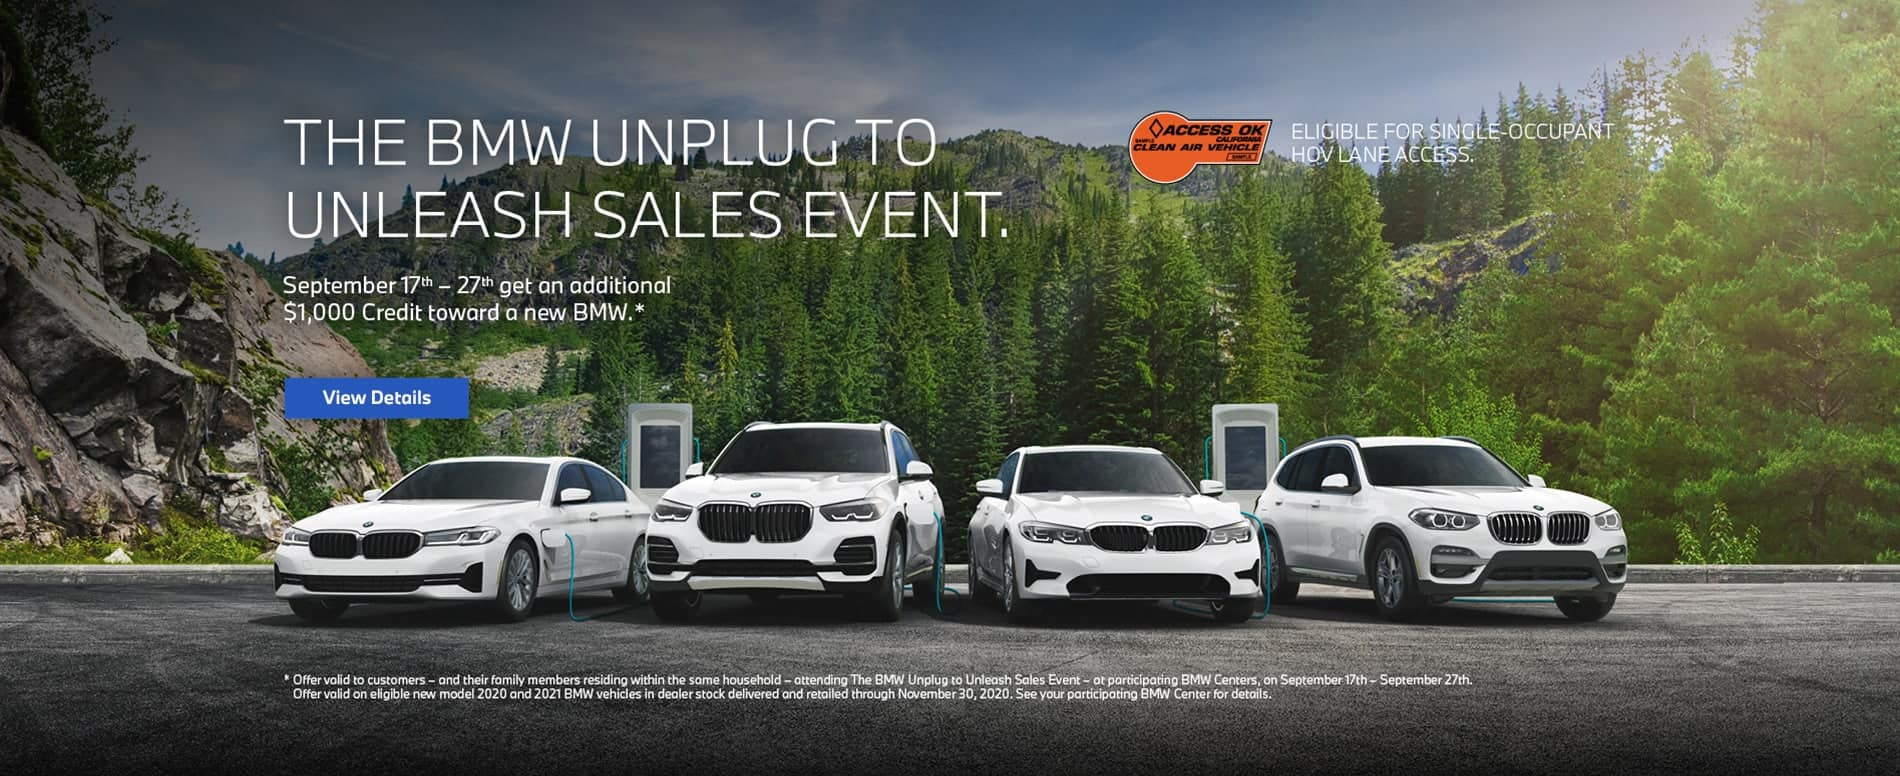 BMW Unplug to Unleash Sales Event